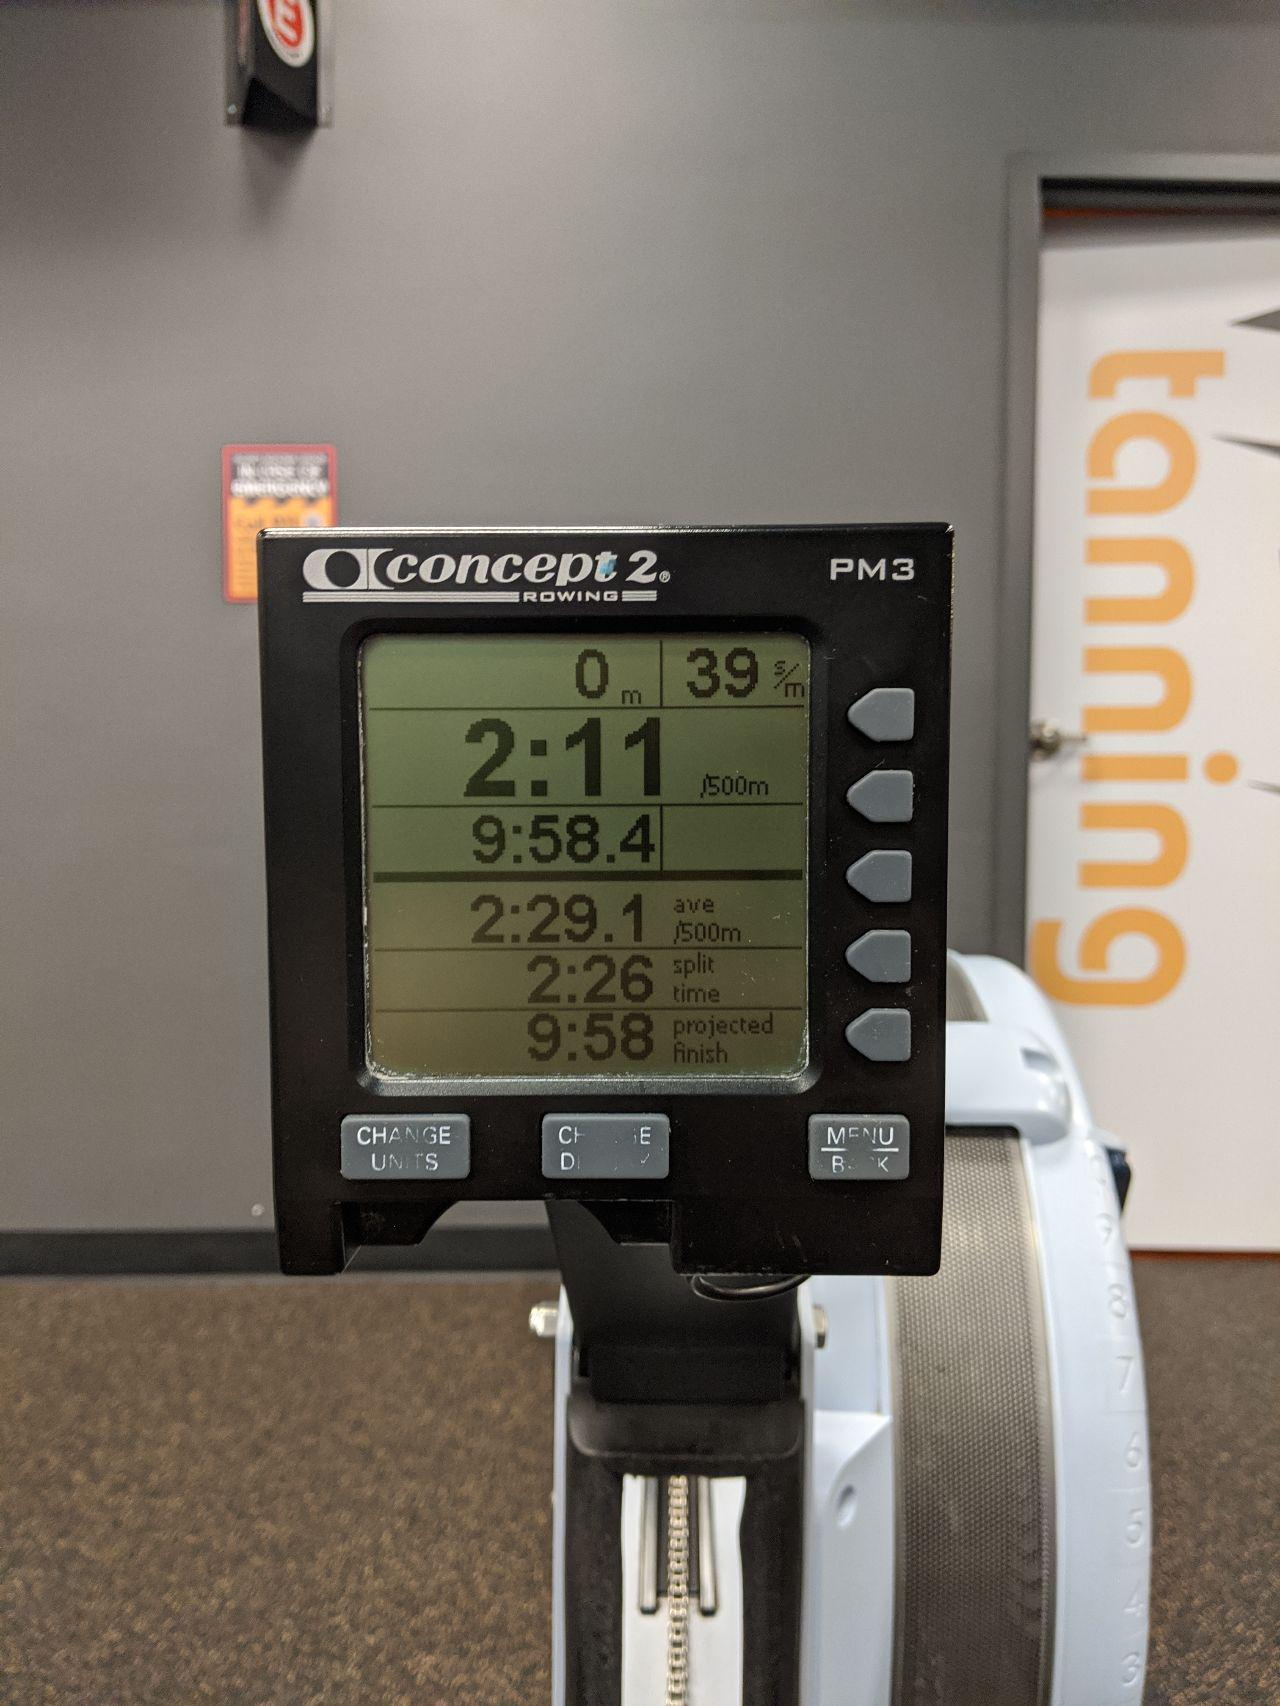 A technical board with a screen attached to a rowing machine. It has various times and numbers on it saying the results of my rowing session.